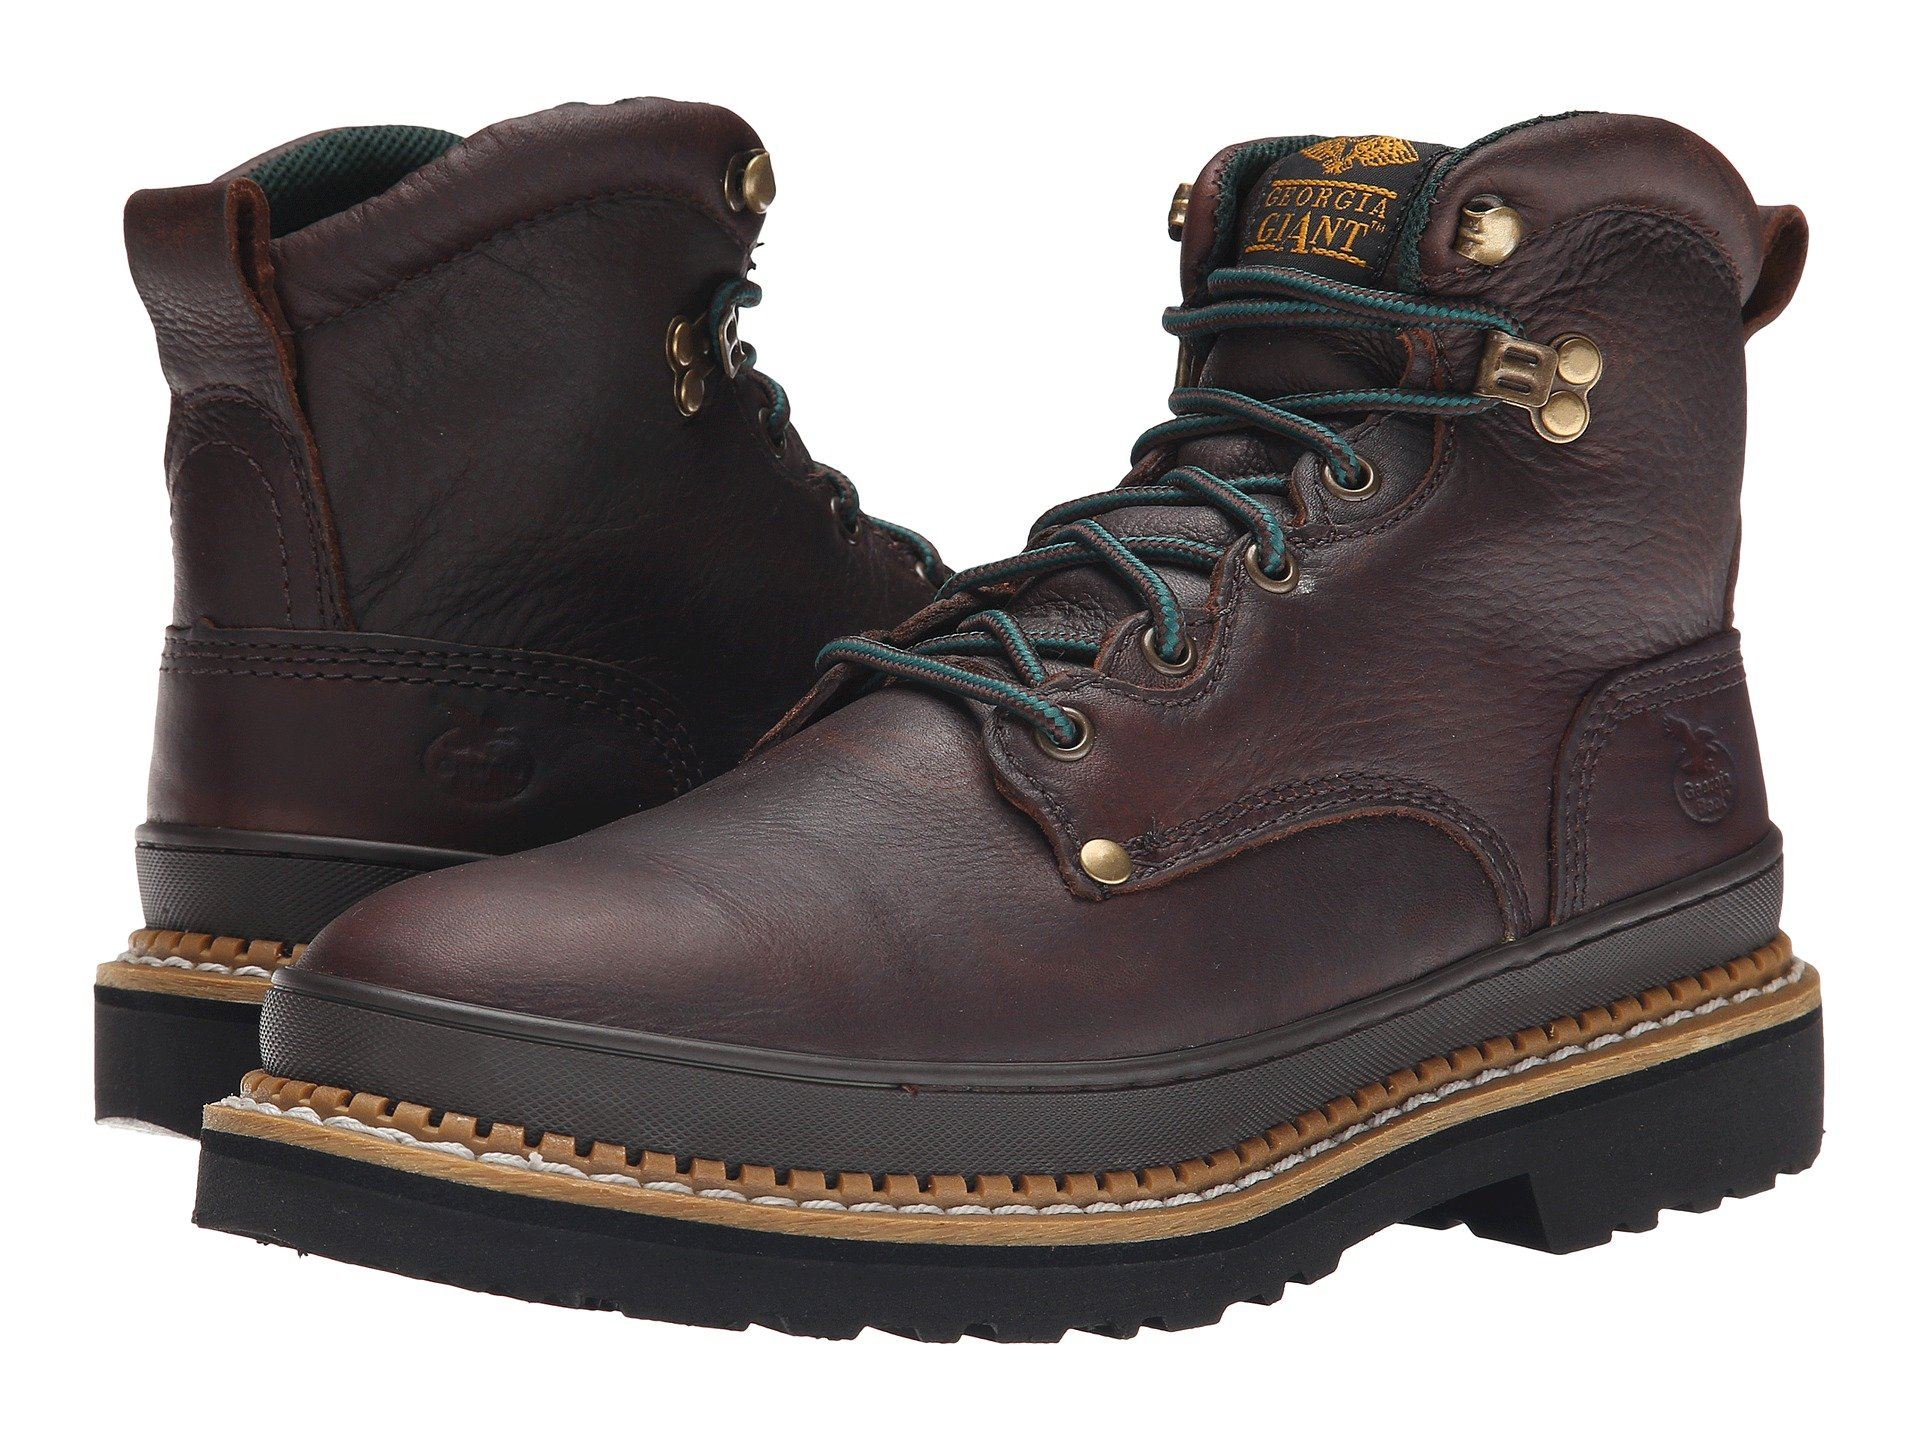 Georgia Mens Brown Leather Waterproof Welly Work Boots.